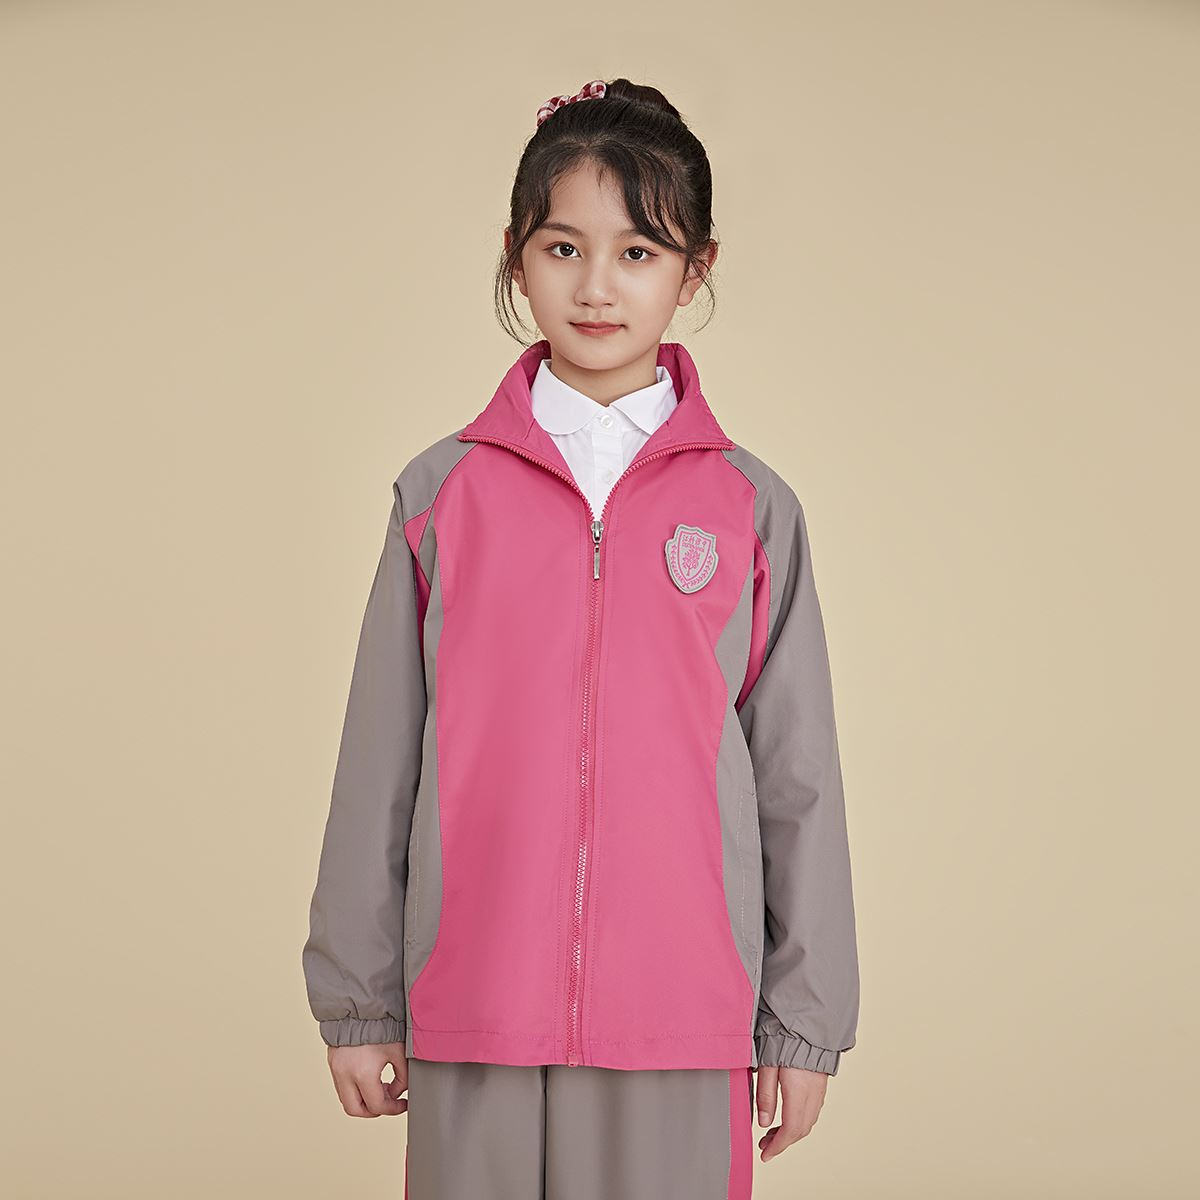 New school designated store golden bird school uniform school uniform set of primary school affiliated to Jiangxi Institute of science and Technology (girls)